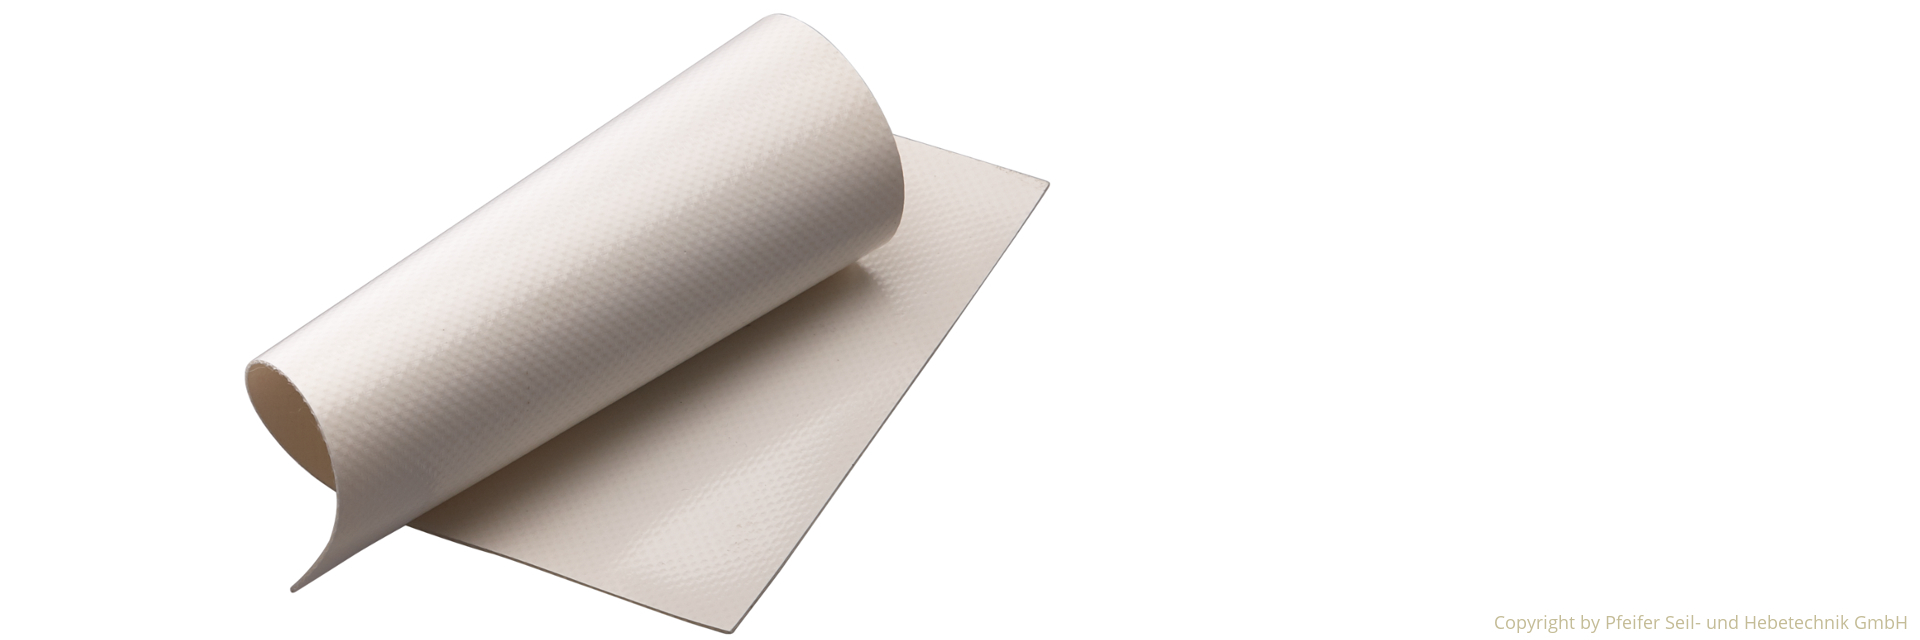 PVC Membrane for lightweight architecture vinyl coated polyester